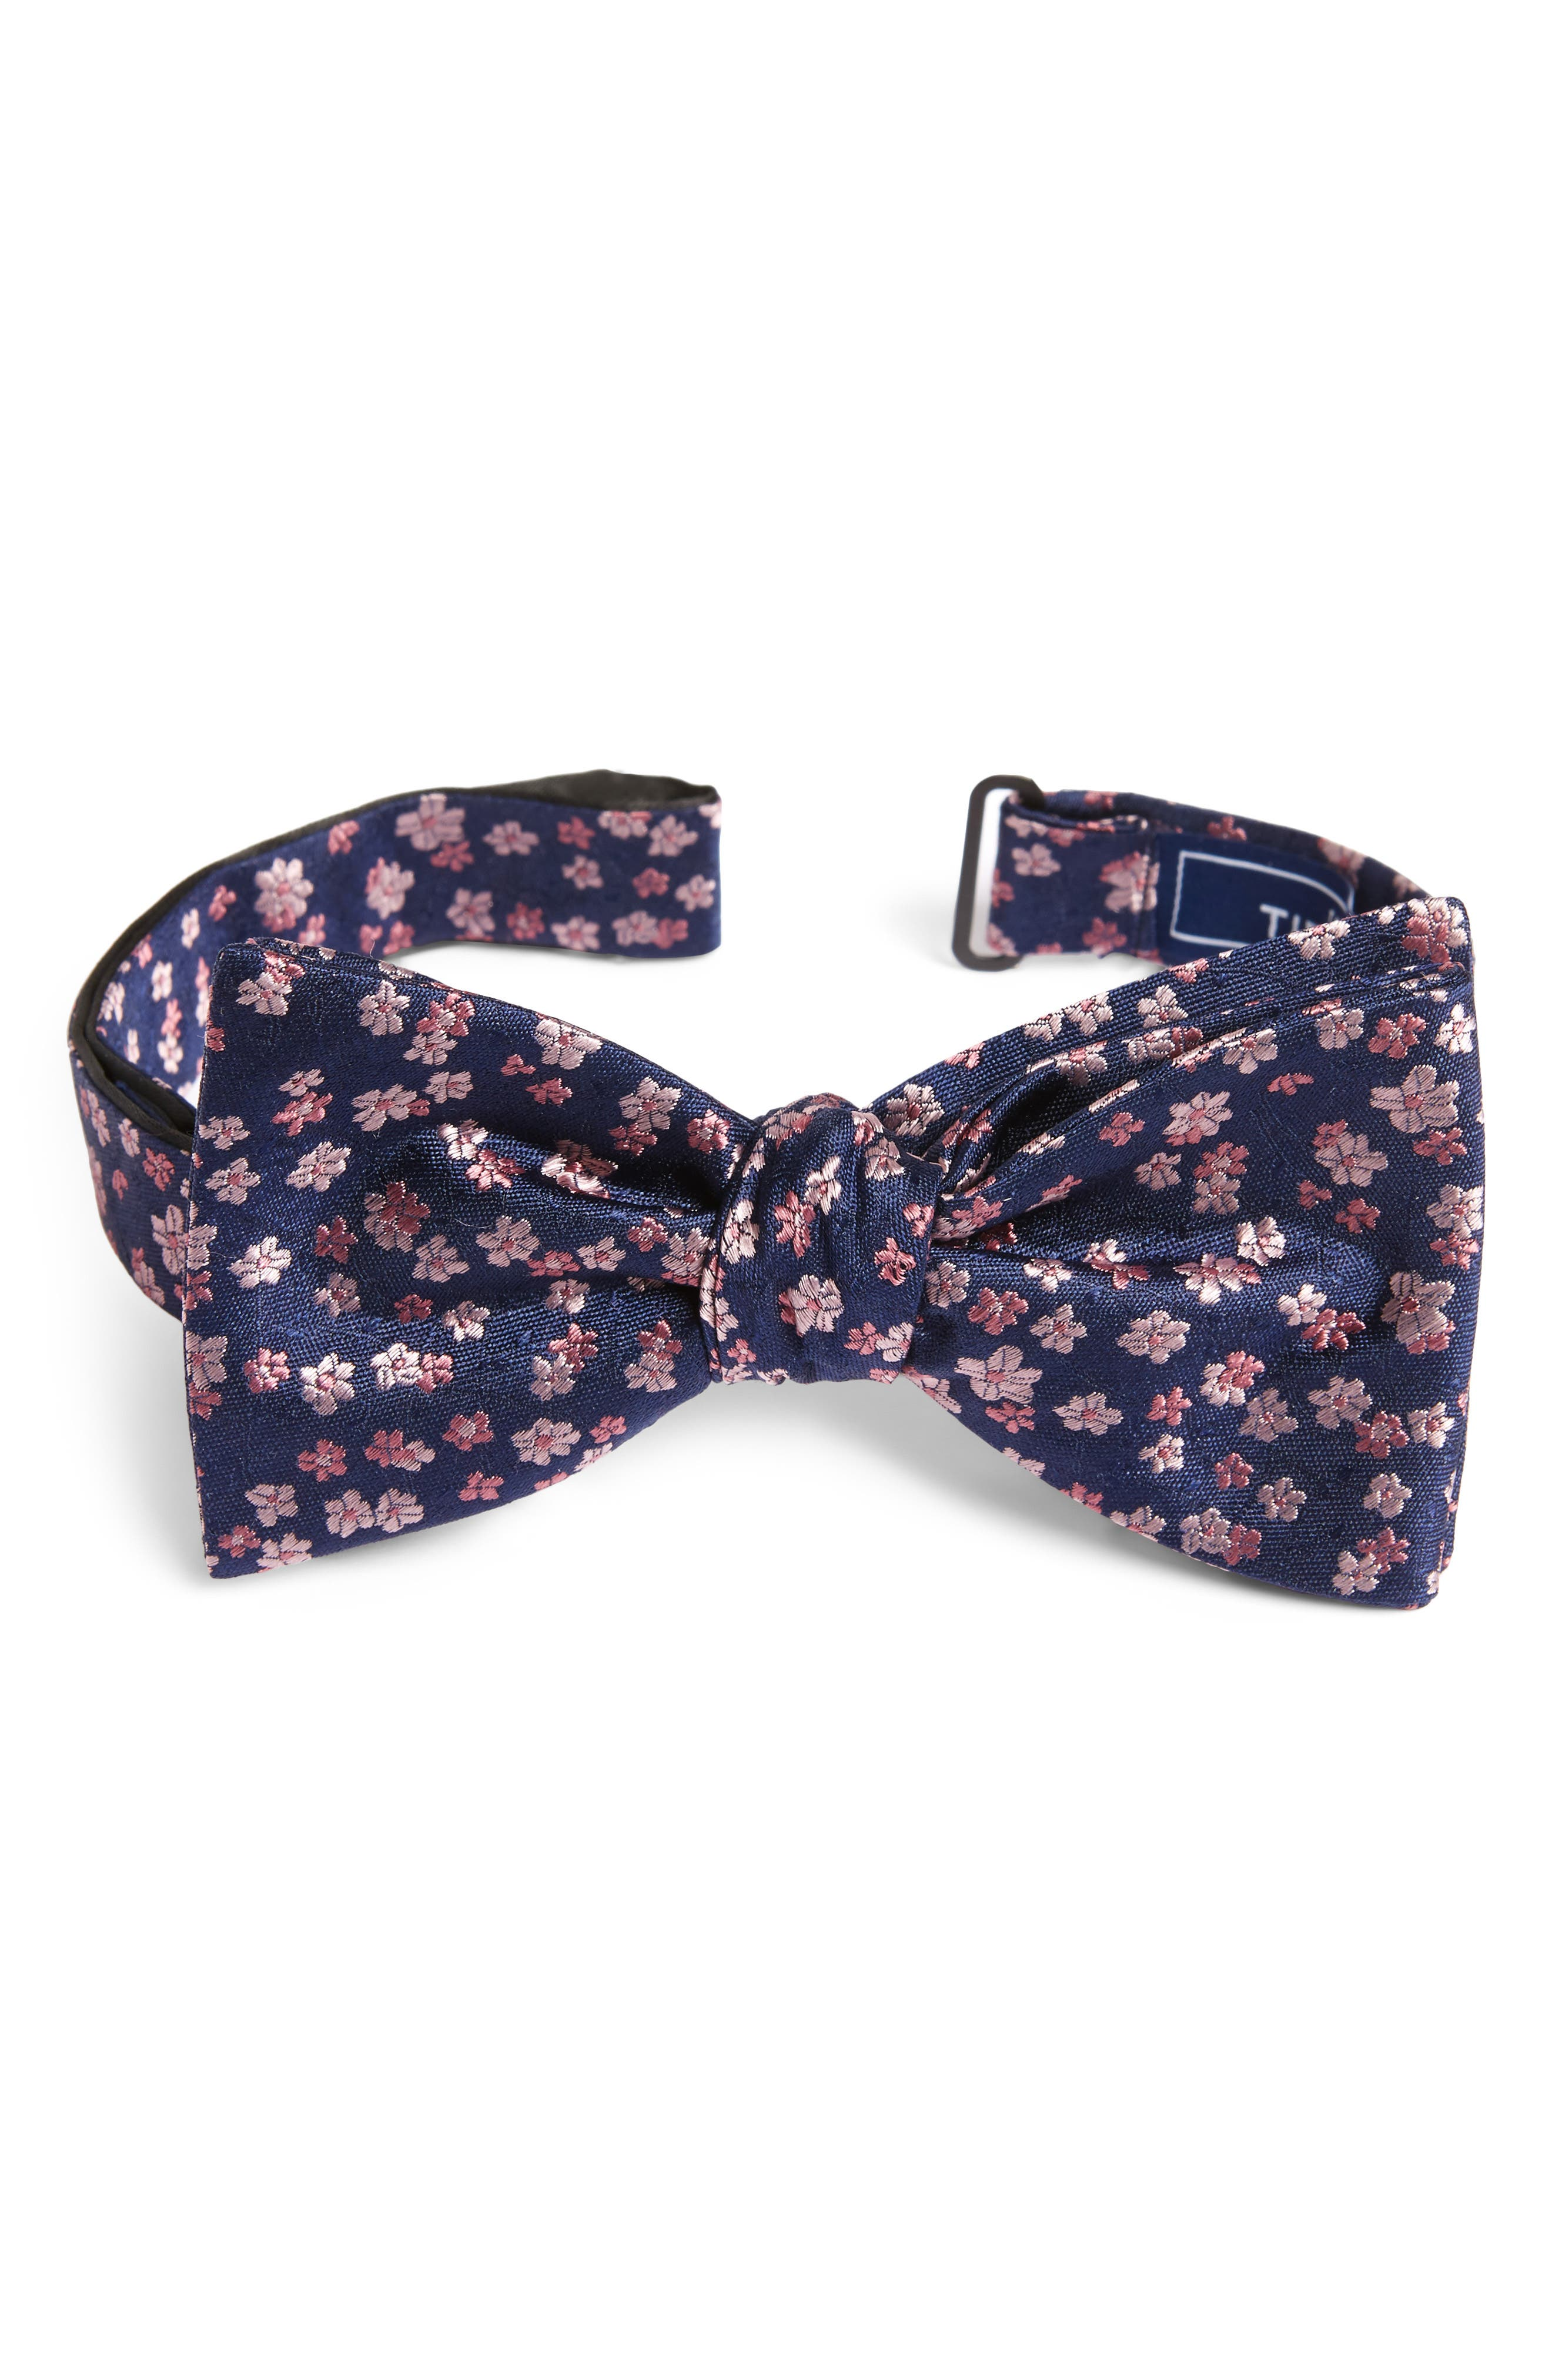 Free Fall Floral Silk Bow Tie,                             Main thumbnail 3, color,